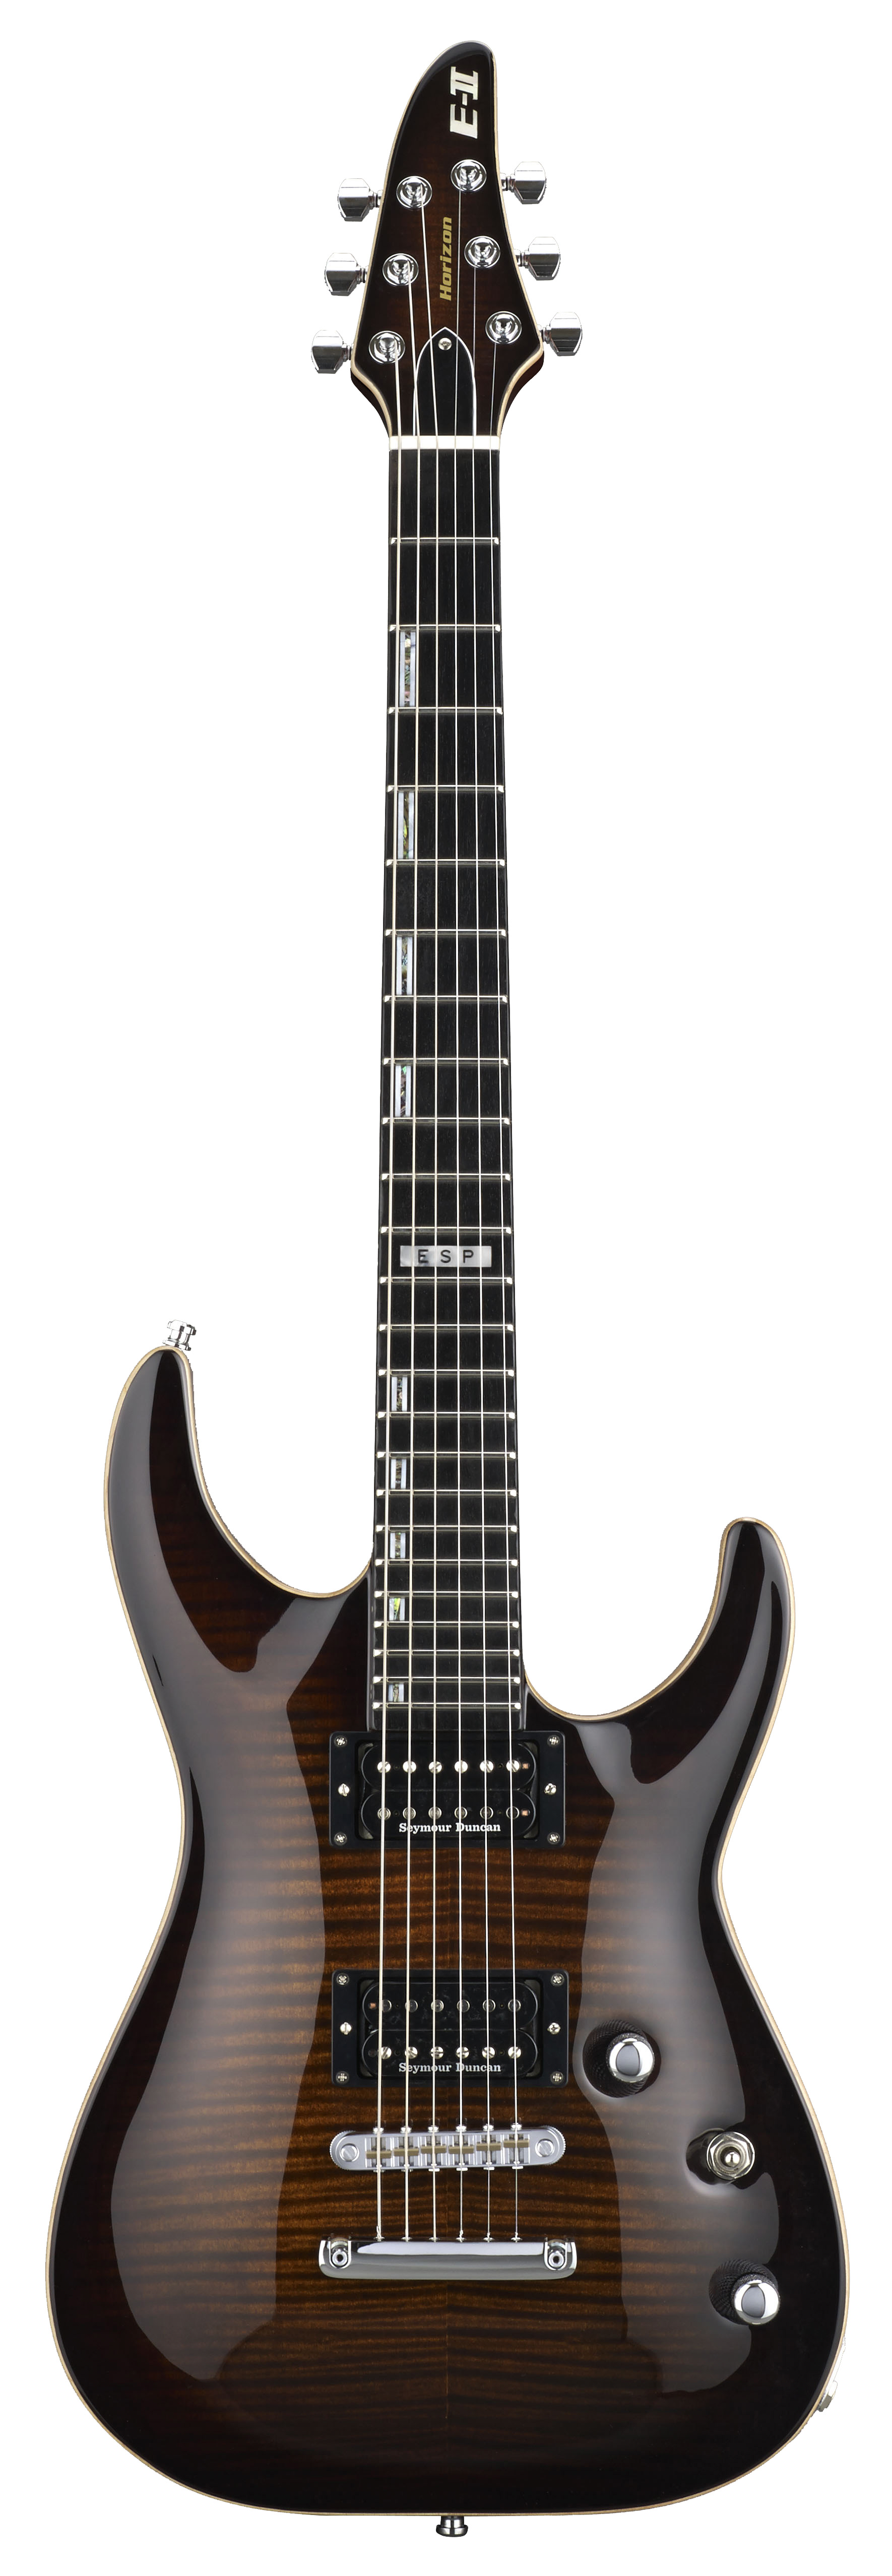 ESP HORIZON FM NT DBSB E-II FM/NT Electric Guitar with Case and Dark Brown Sunburst Finish